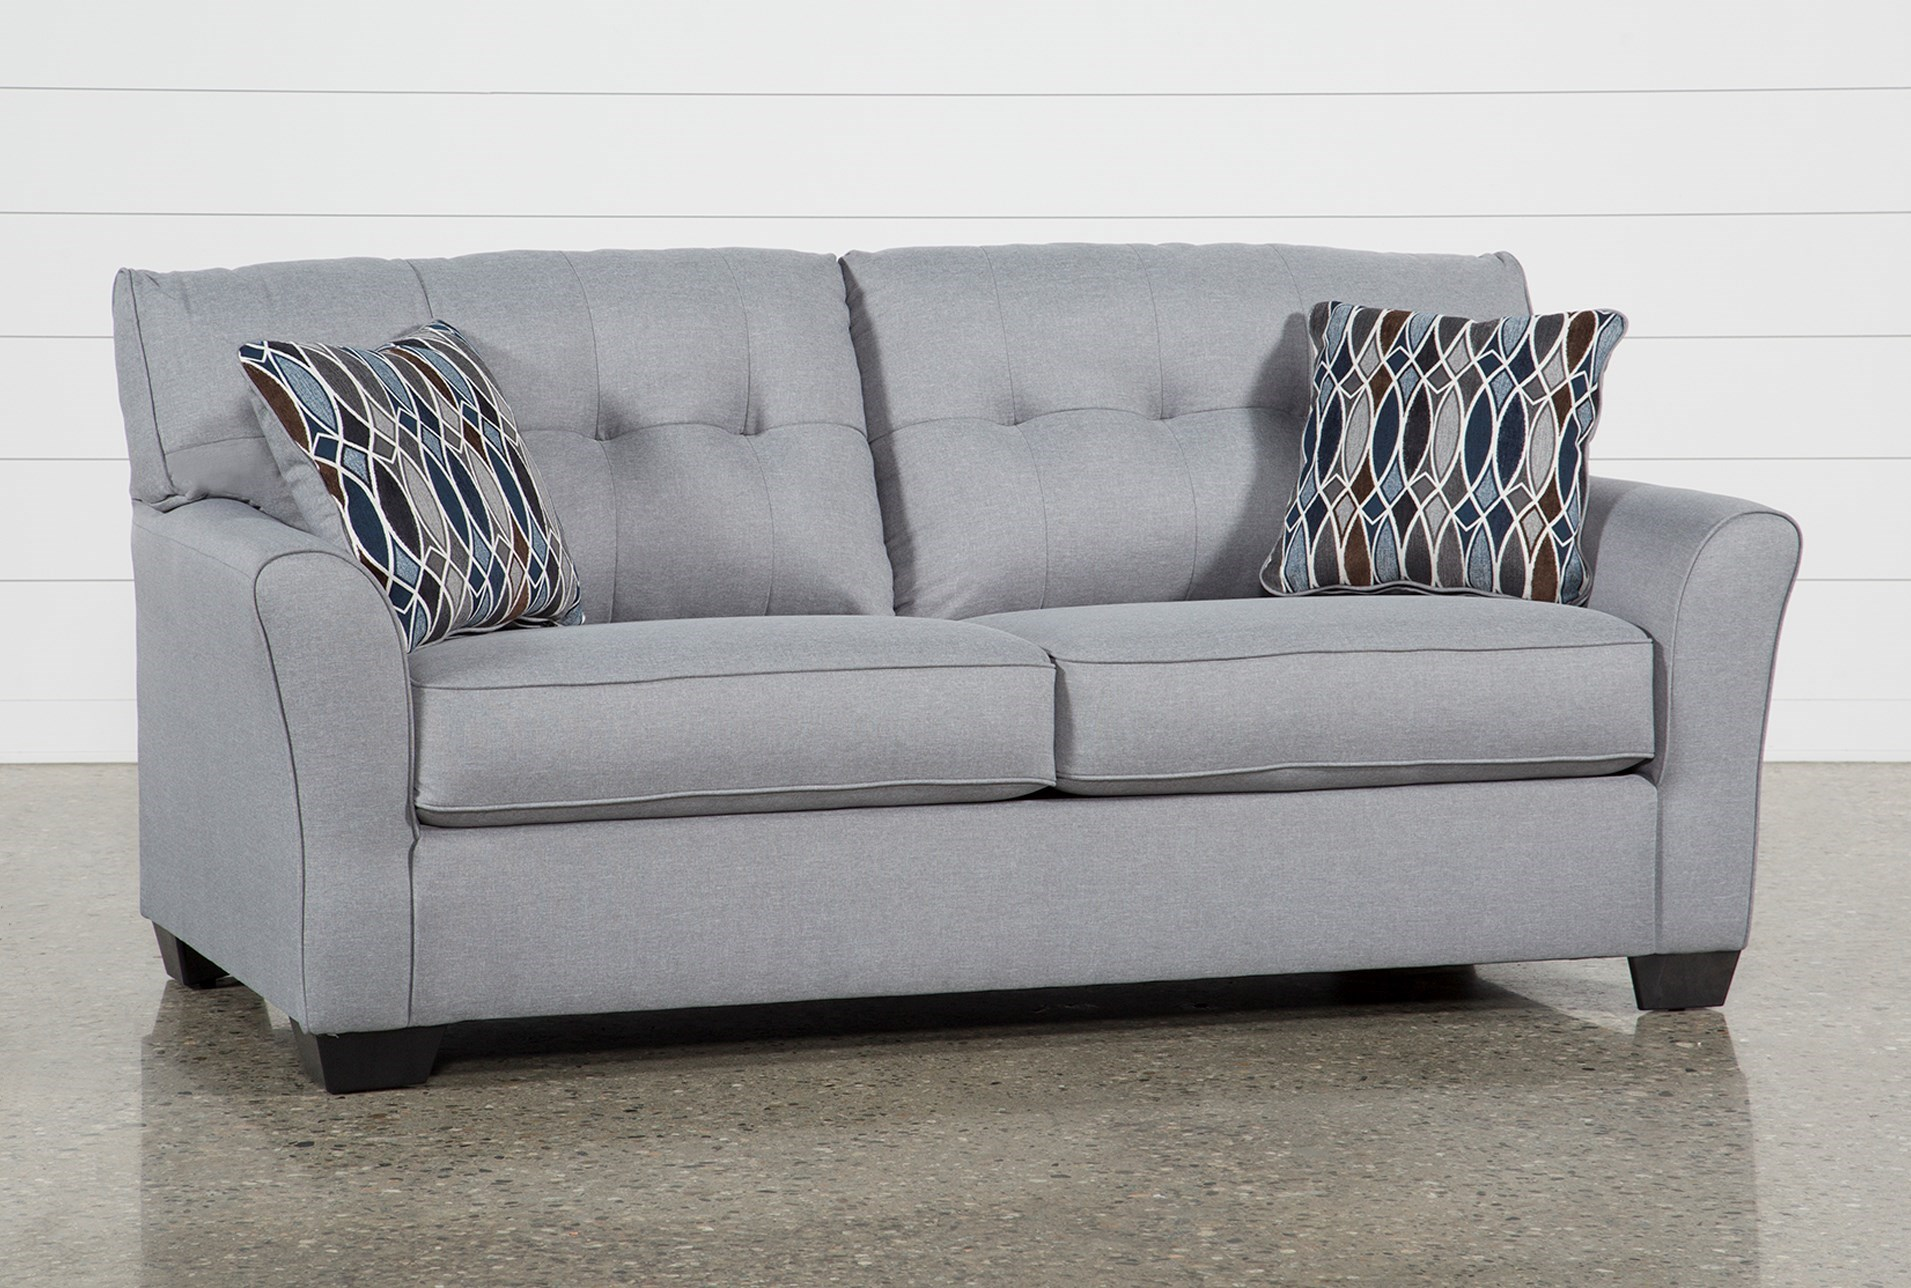 sofa sleepers full size simmons upholstery 7251 full size sofa sleeper in casual